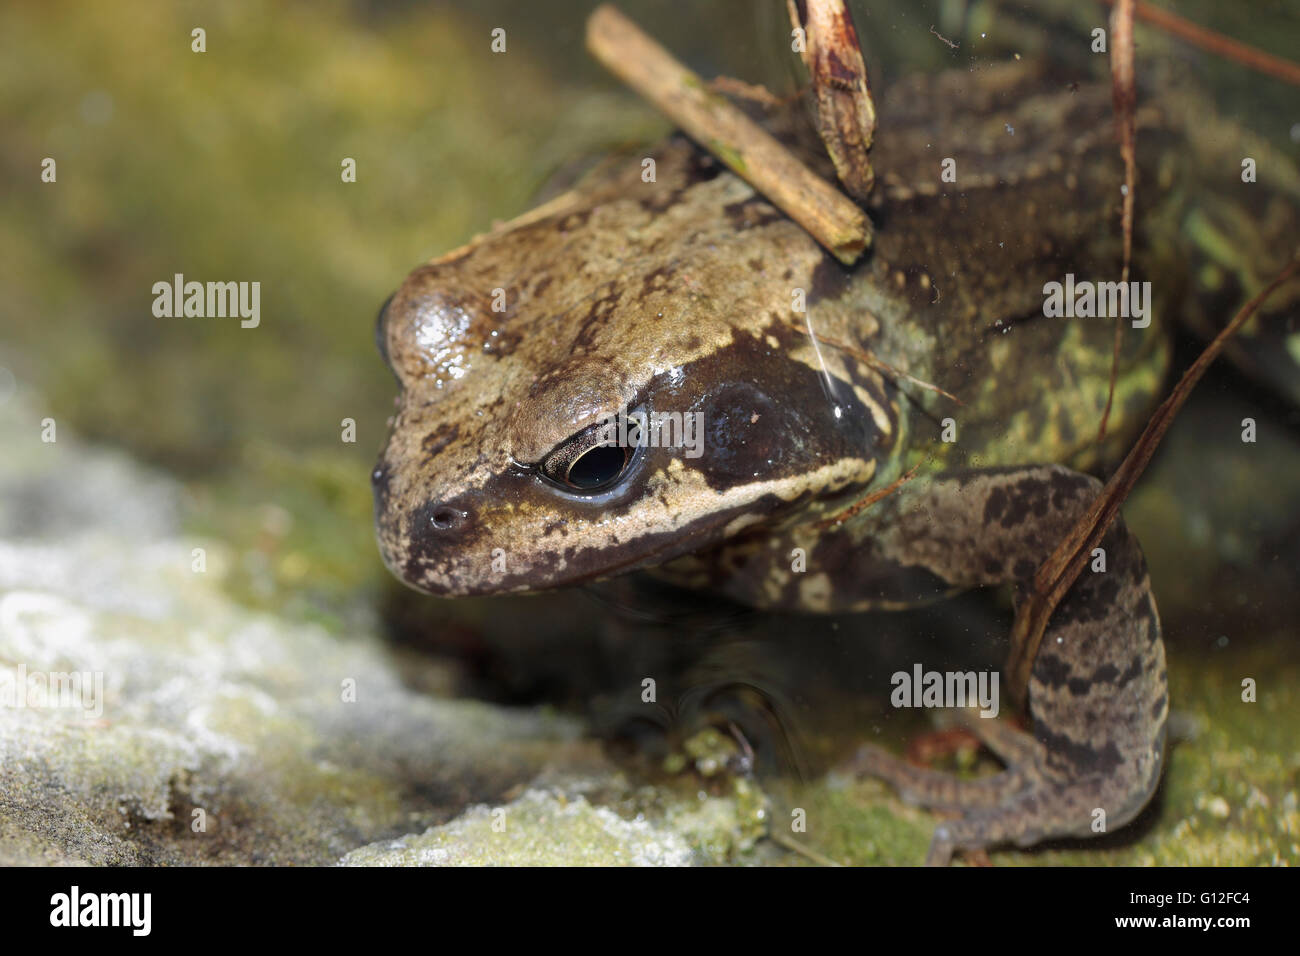 Common English frog rana temporaria in a garden pond - Stock Image